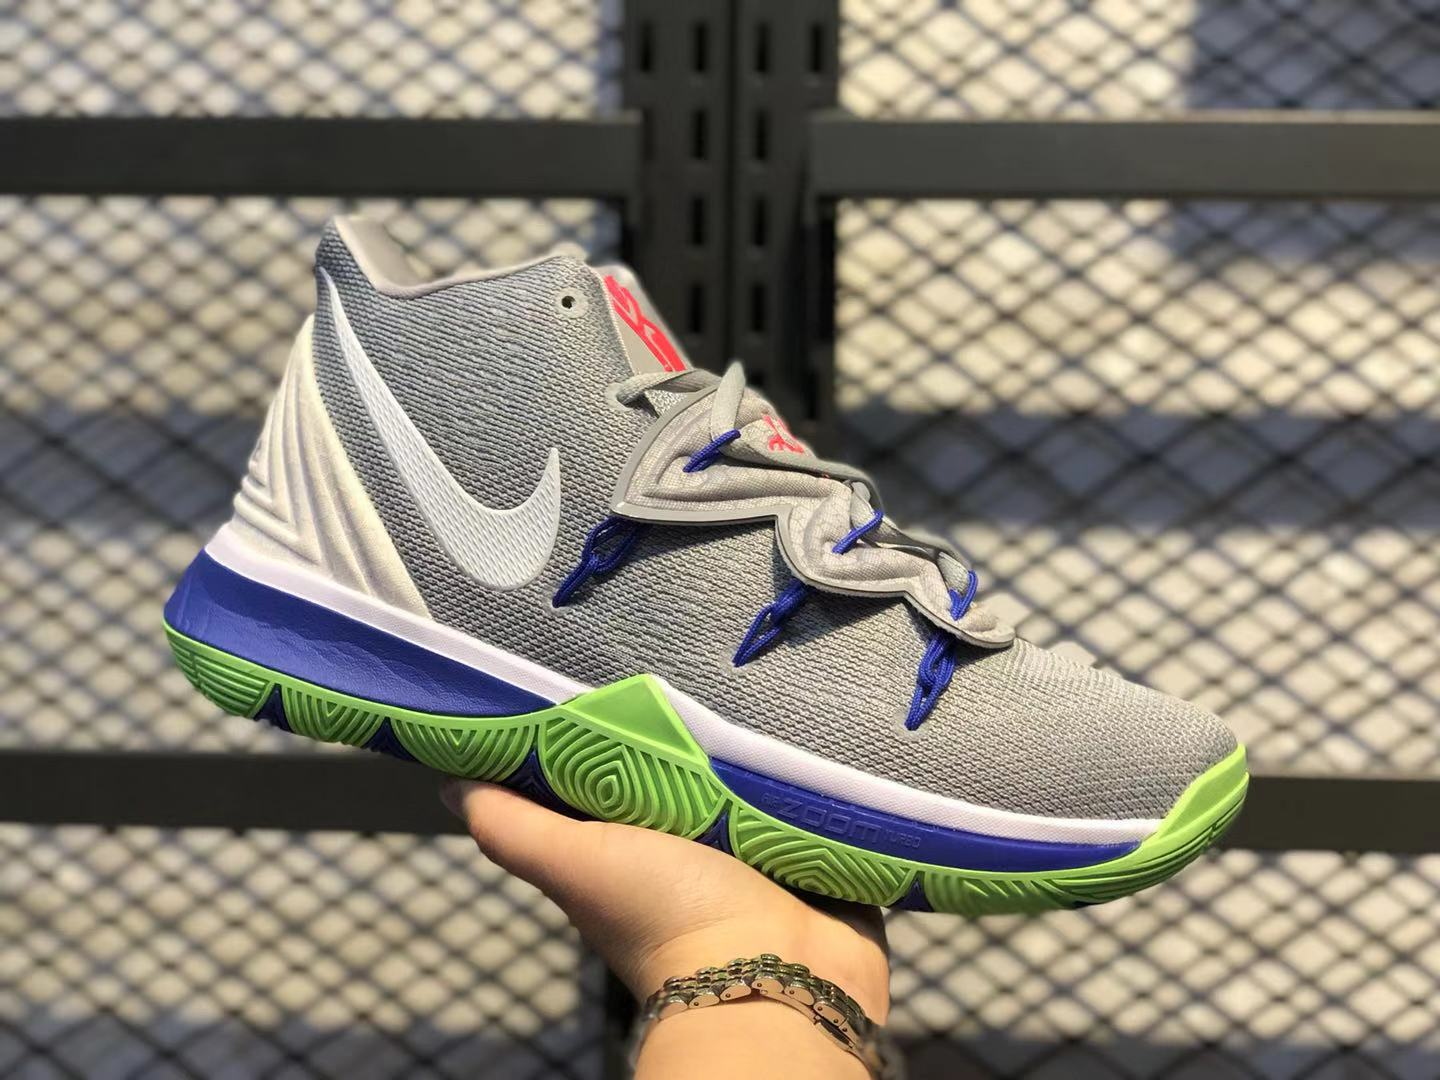 Nike Zoom Kyrie 5 Wolf Grey/White-Lime Blast Boys Shoes Free Shipping